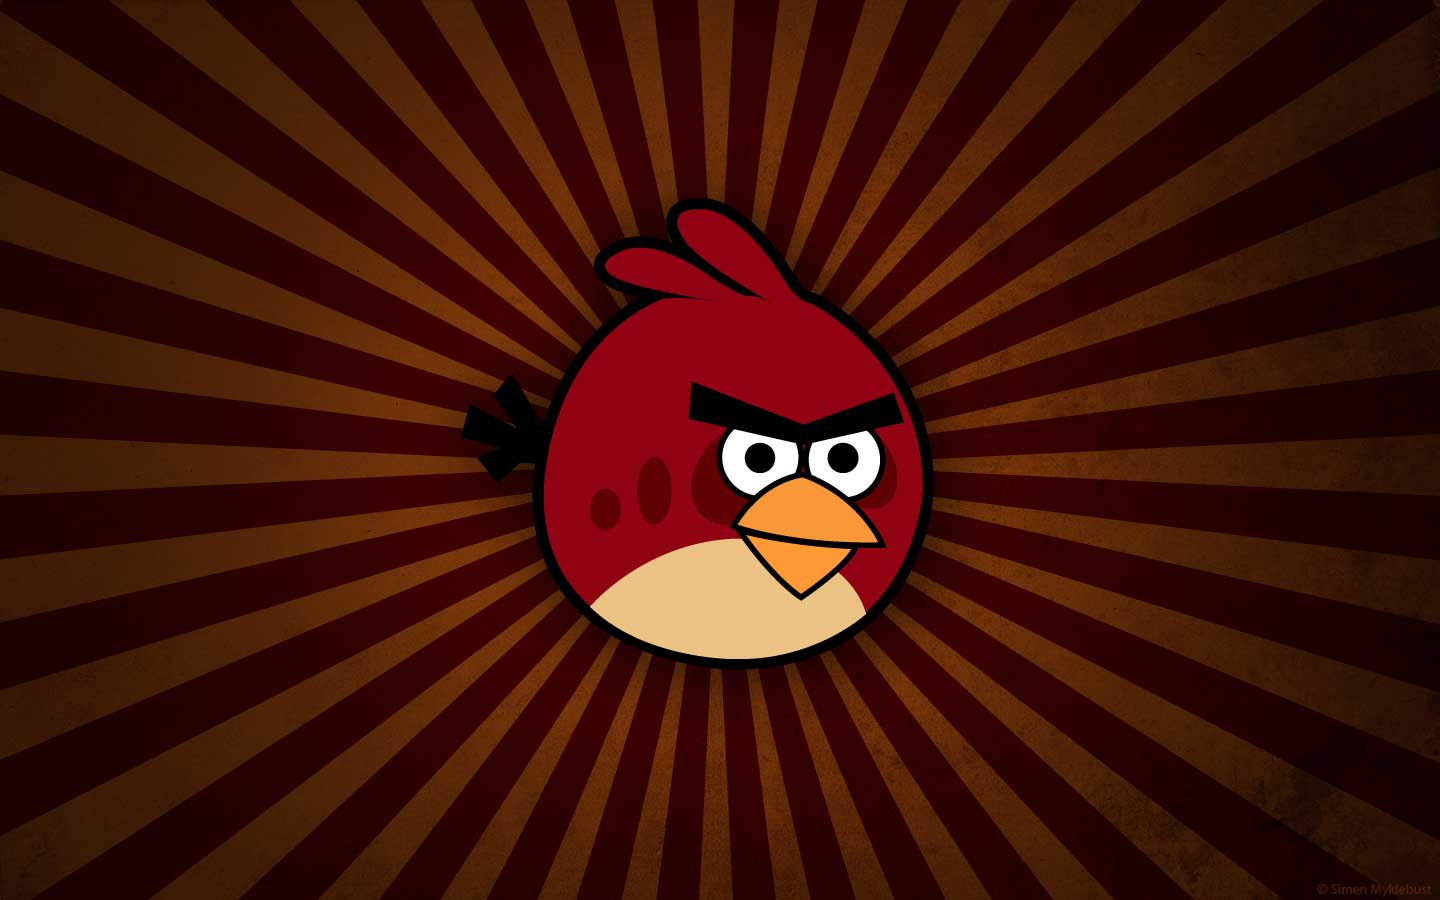 208AngryBirdsWallpapers 1 40+ Angry Birds Wallpapers HD to Customize Your Desktop/PC